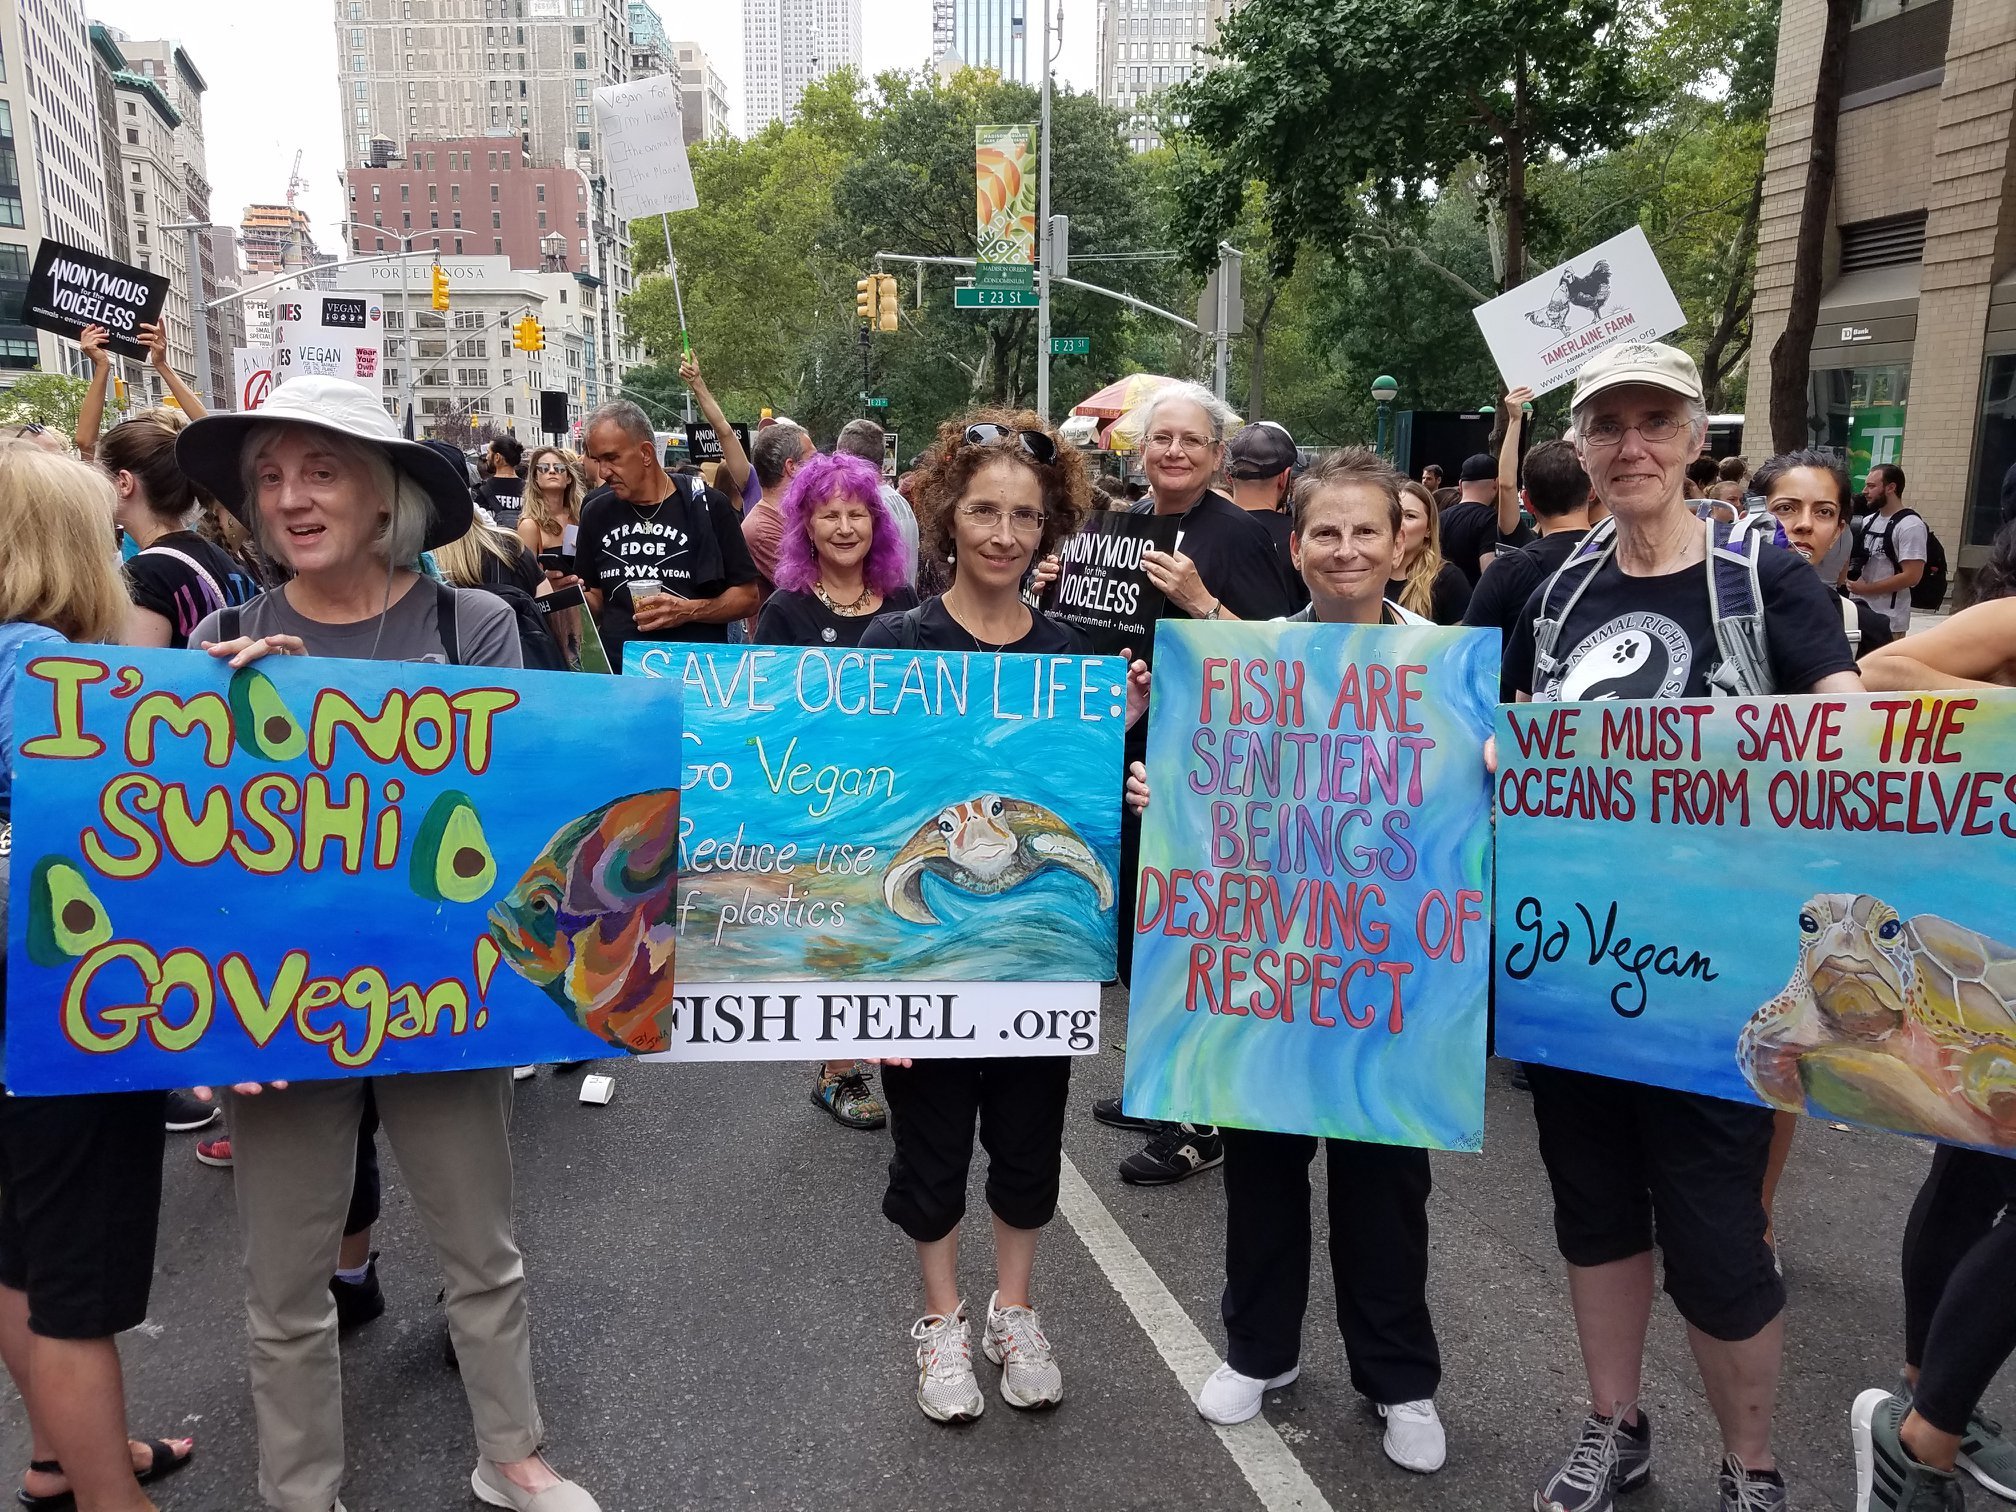 Save the Oceans - New York Animal Rights March